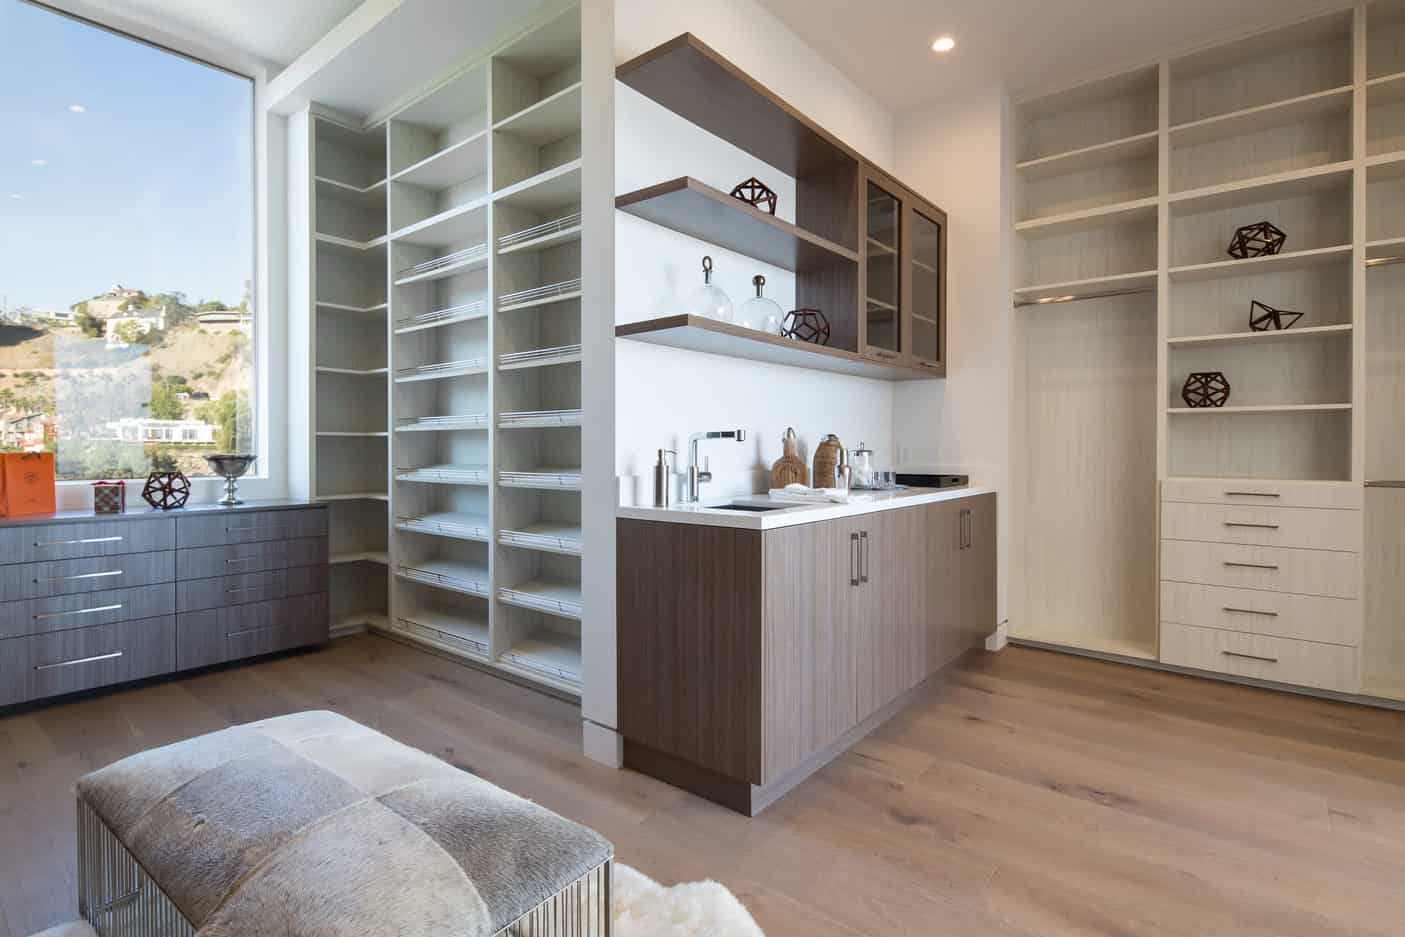 Architecture-Contemporary-Residence-Noesis Group-16-1 Kindesign